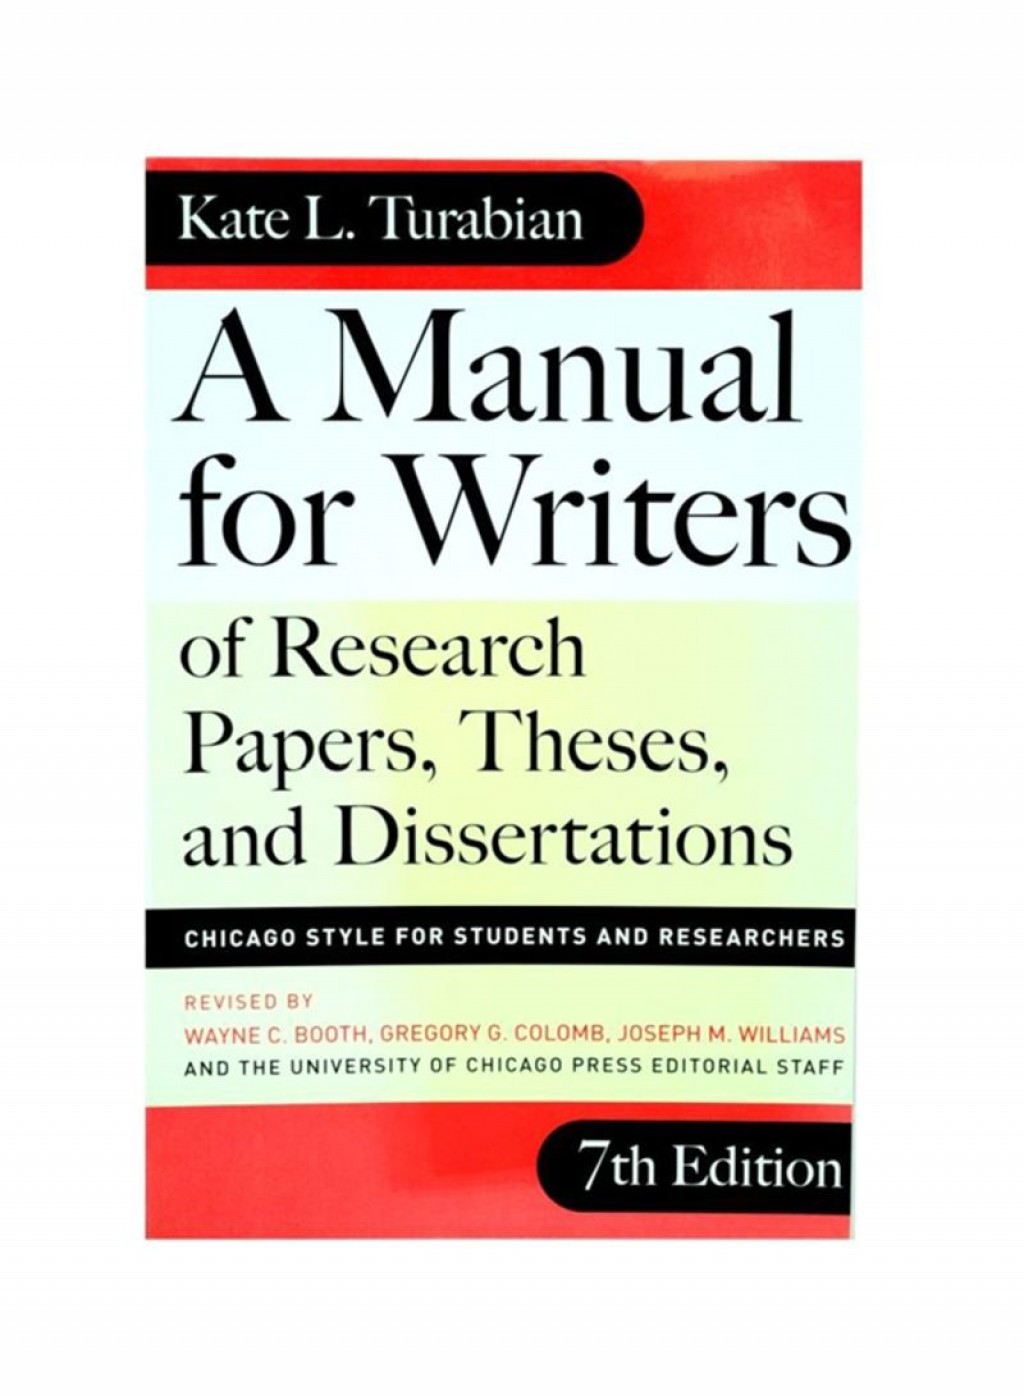 005 Research Paper N21270079a 1 Manual For Writers Of Papers Theses And Dissertations 7th Sensational A Edition Large